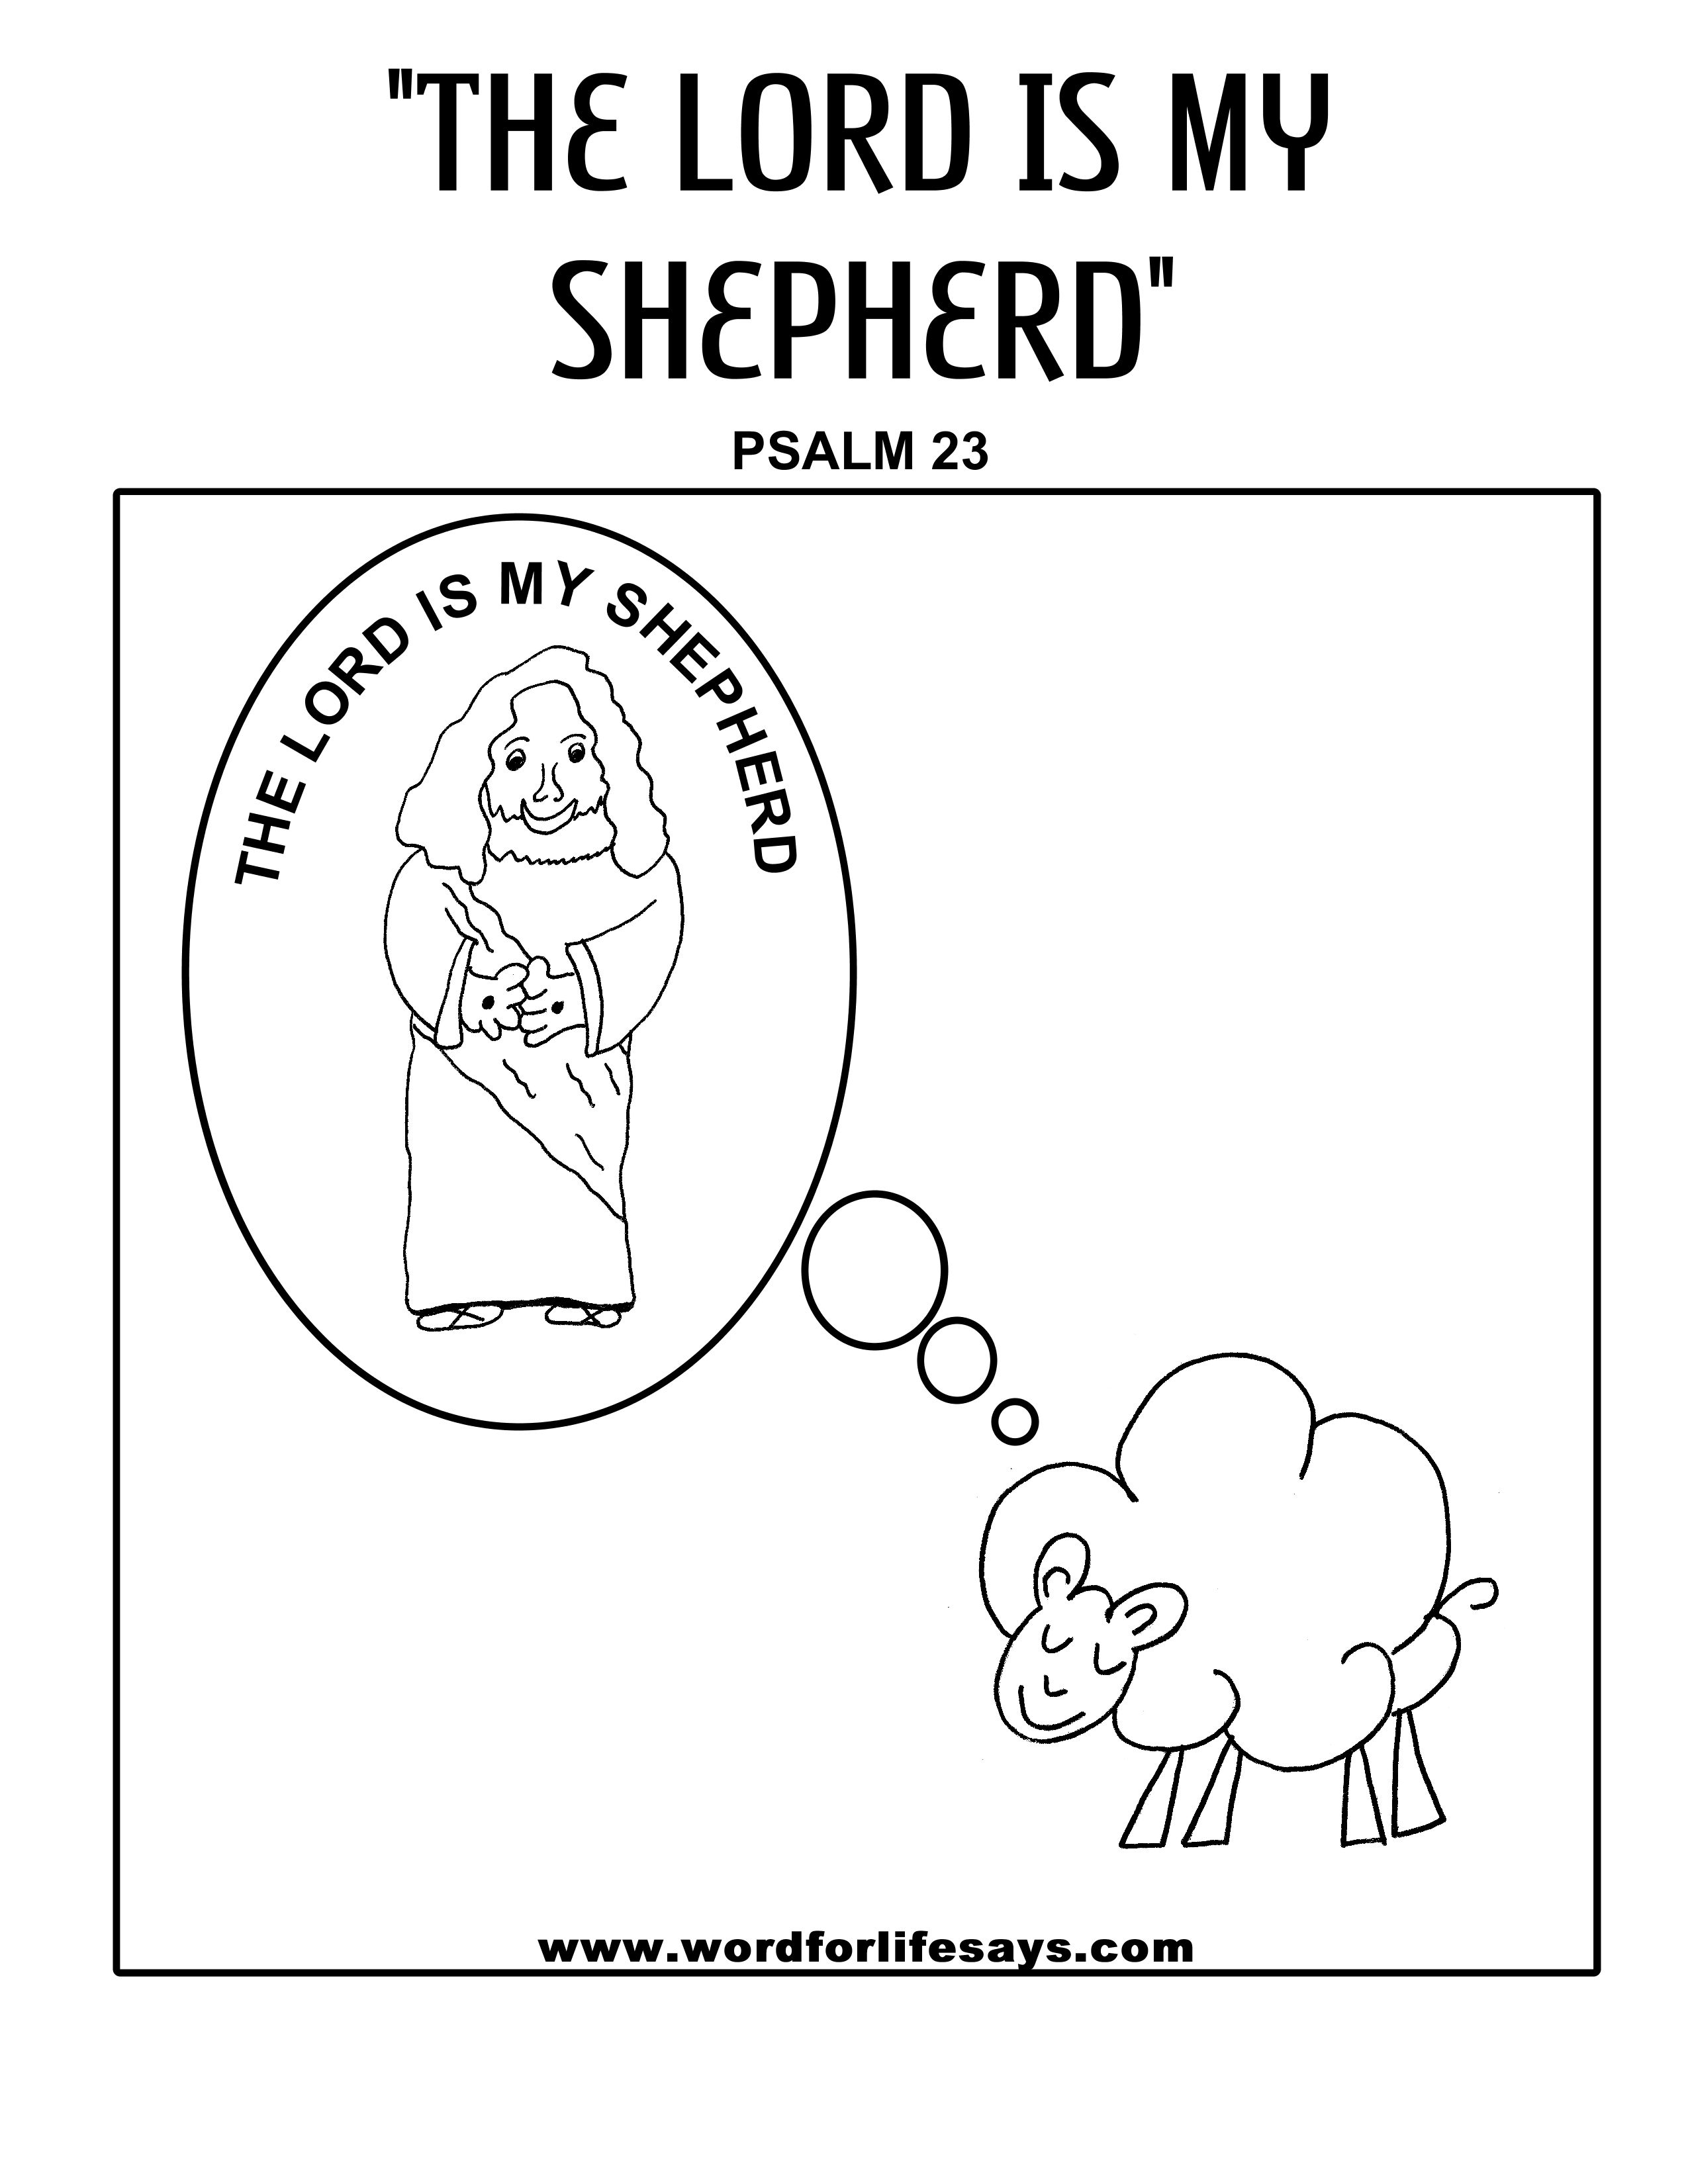 god is my shepherd coloring pages | The Lord Is My Shepherd Psalm 23 Coloring Page Coloring Pages